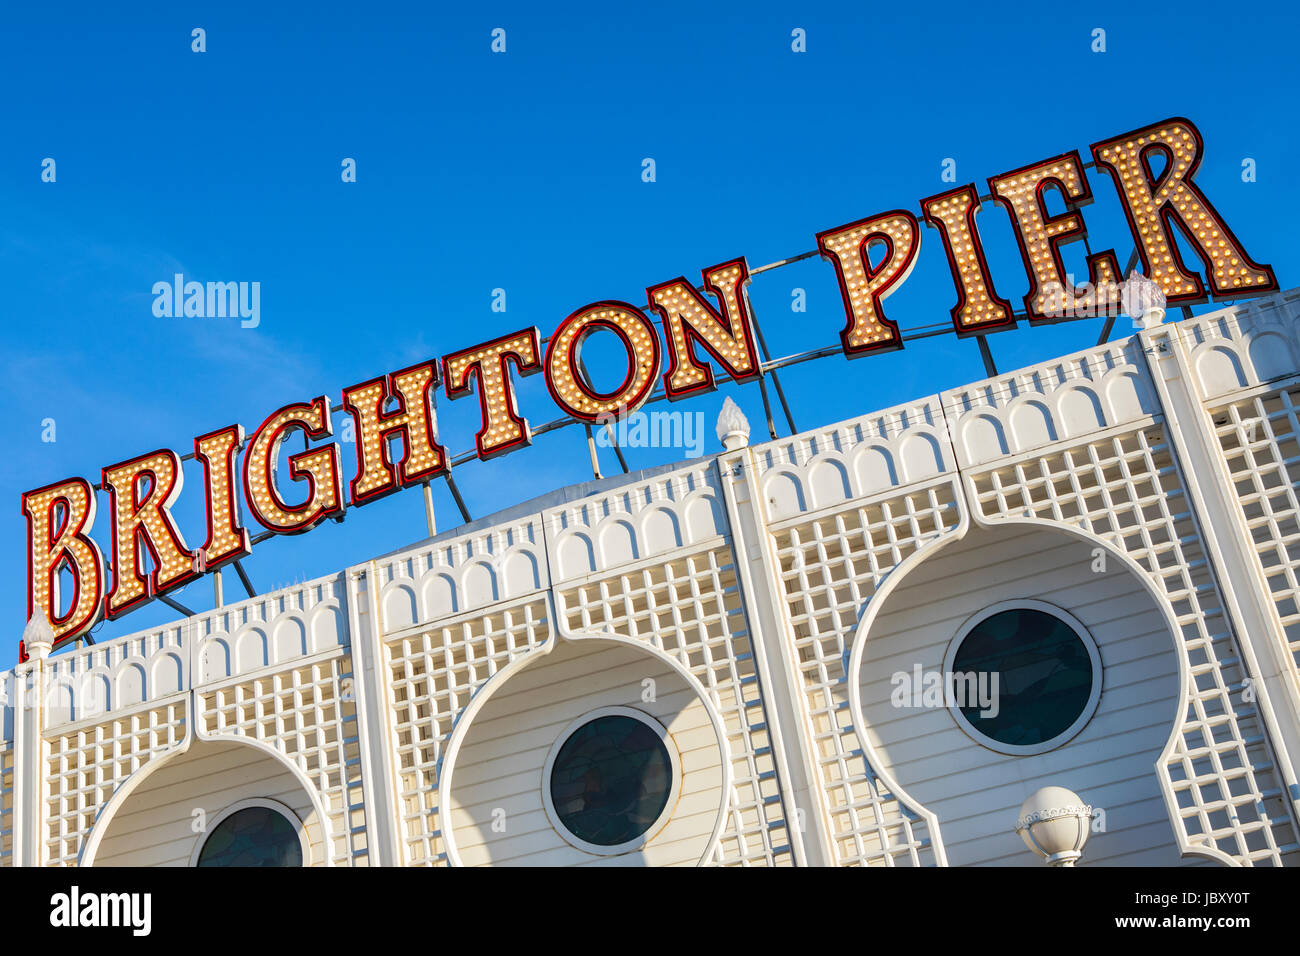 BRIGHTON, UK - MAY 31ST 2017: The lit-up neon sign on the historic Brighton Pier in East Sussex, UK, on 31st May - Stock Image